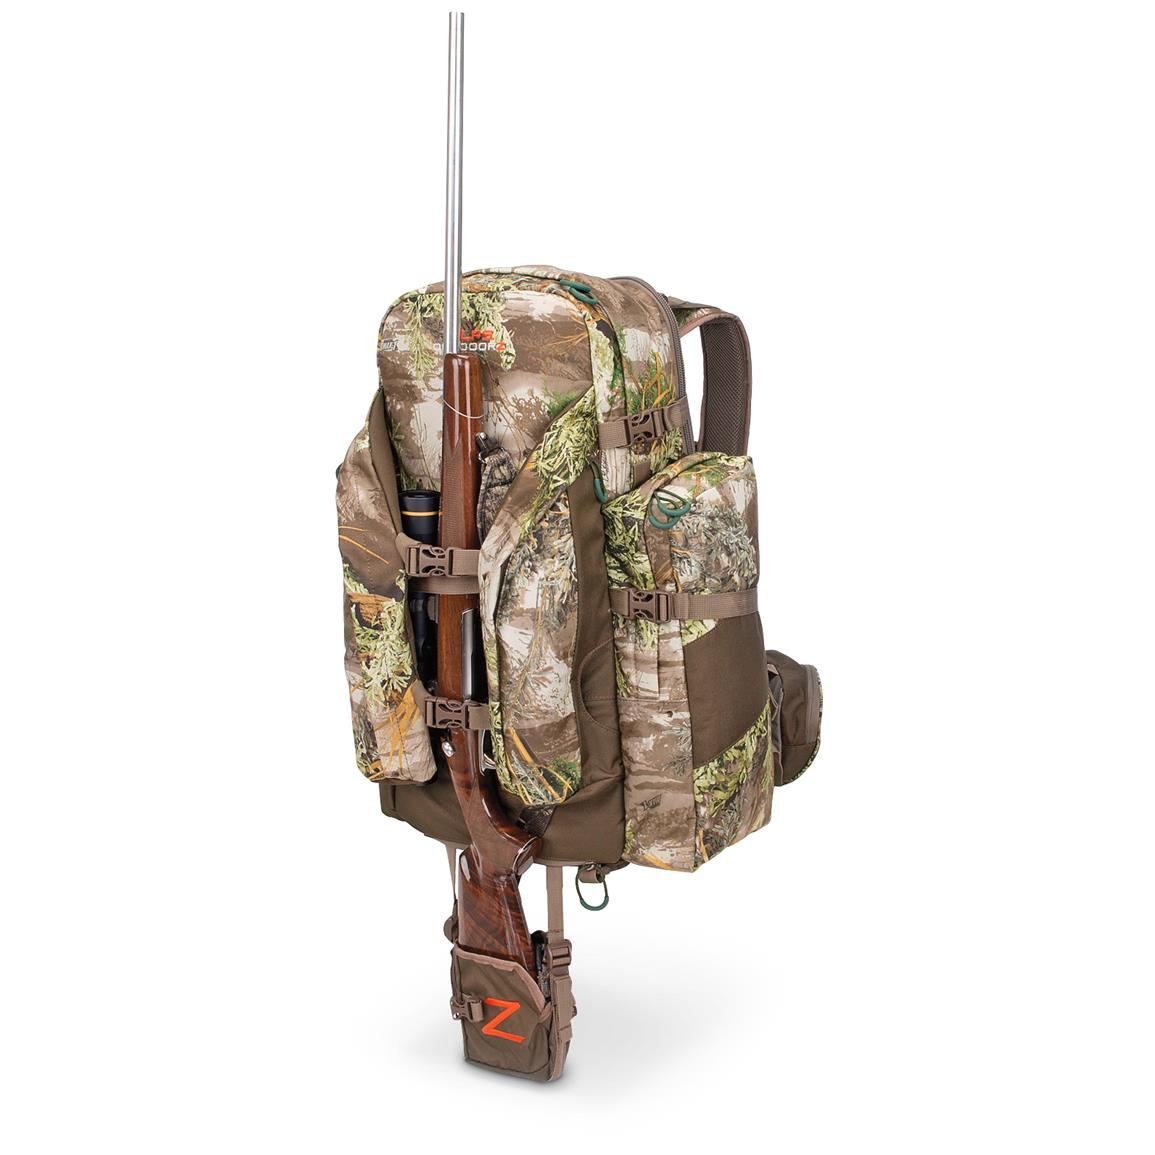 Expandable pocket allows you to securely hold your bow or gun